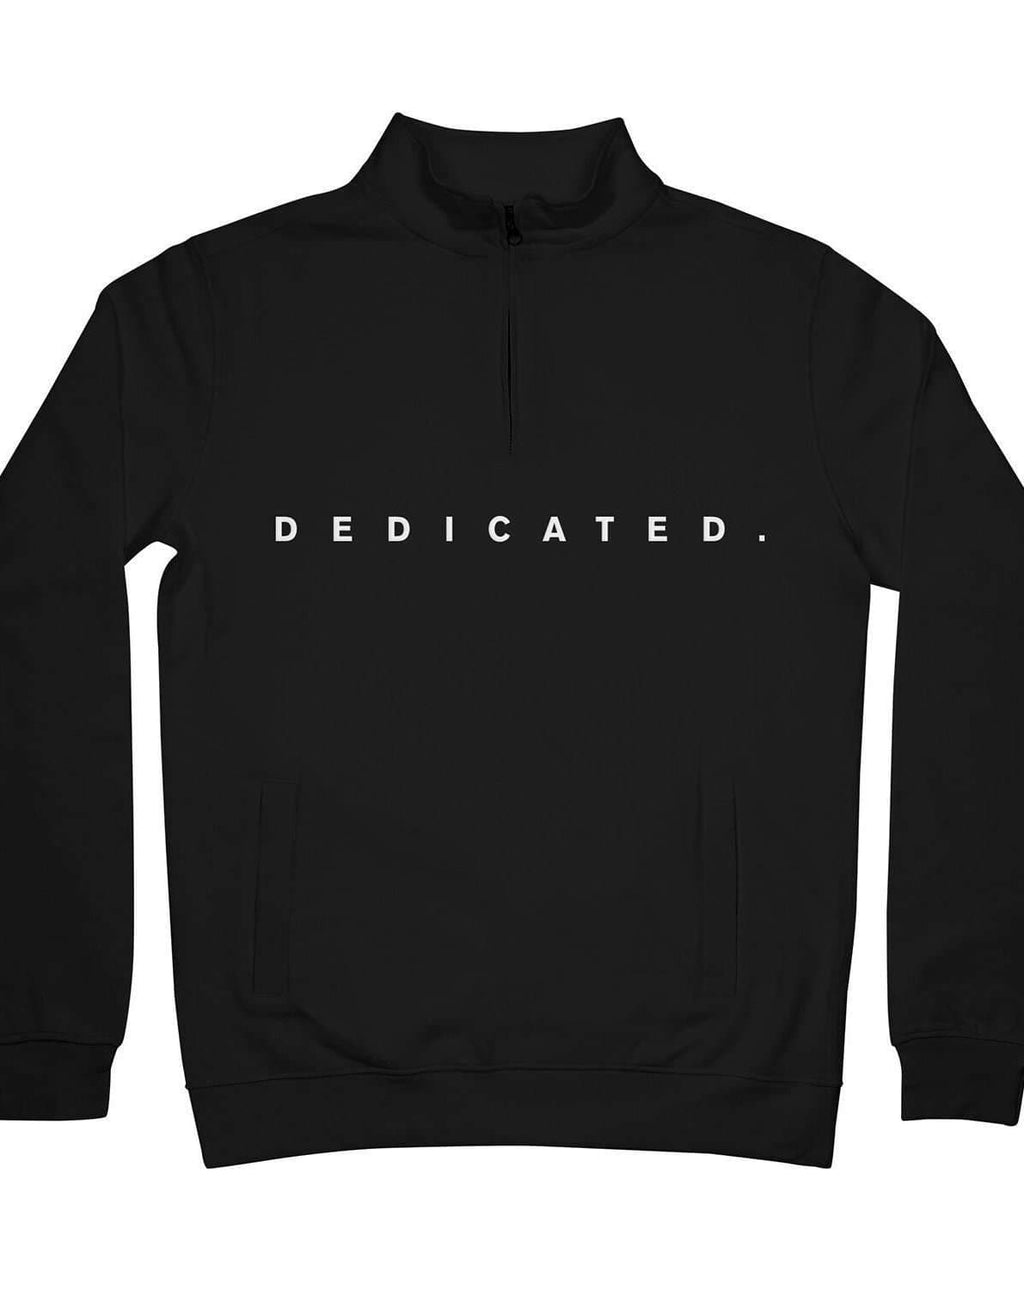 Malmoe logo Hoodies og gensere Dedicated